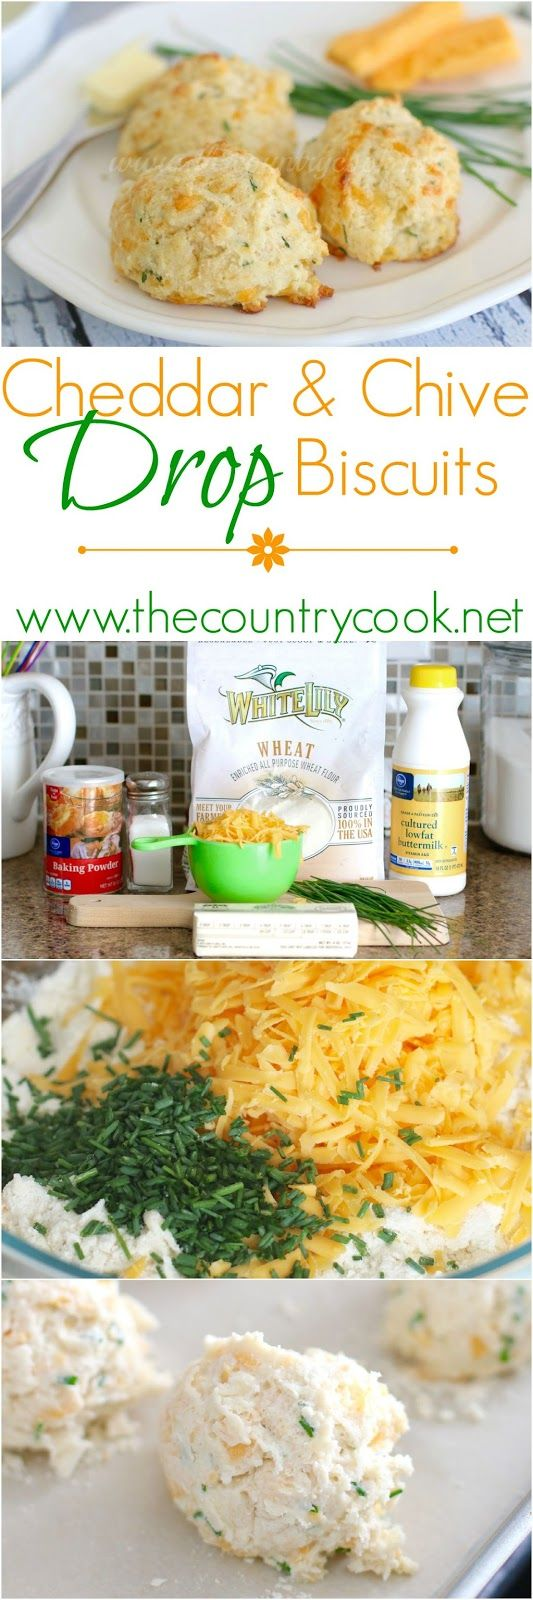 Cheddar & Chive Drop Biscuits recipe from The Country Cook. Drop biscuits are so dang easy and the ones I make most often. No rolling or biscuit cutters. I like to make these with different kinds of cheese too. Pepper jack is really good. I've also used green onions in place of the chives. Either way, really good!